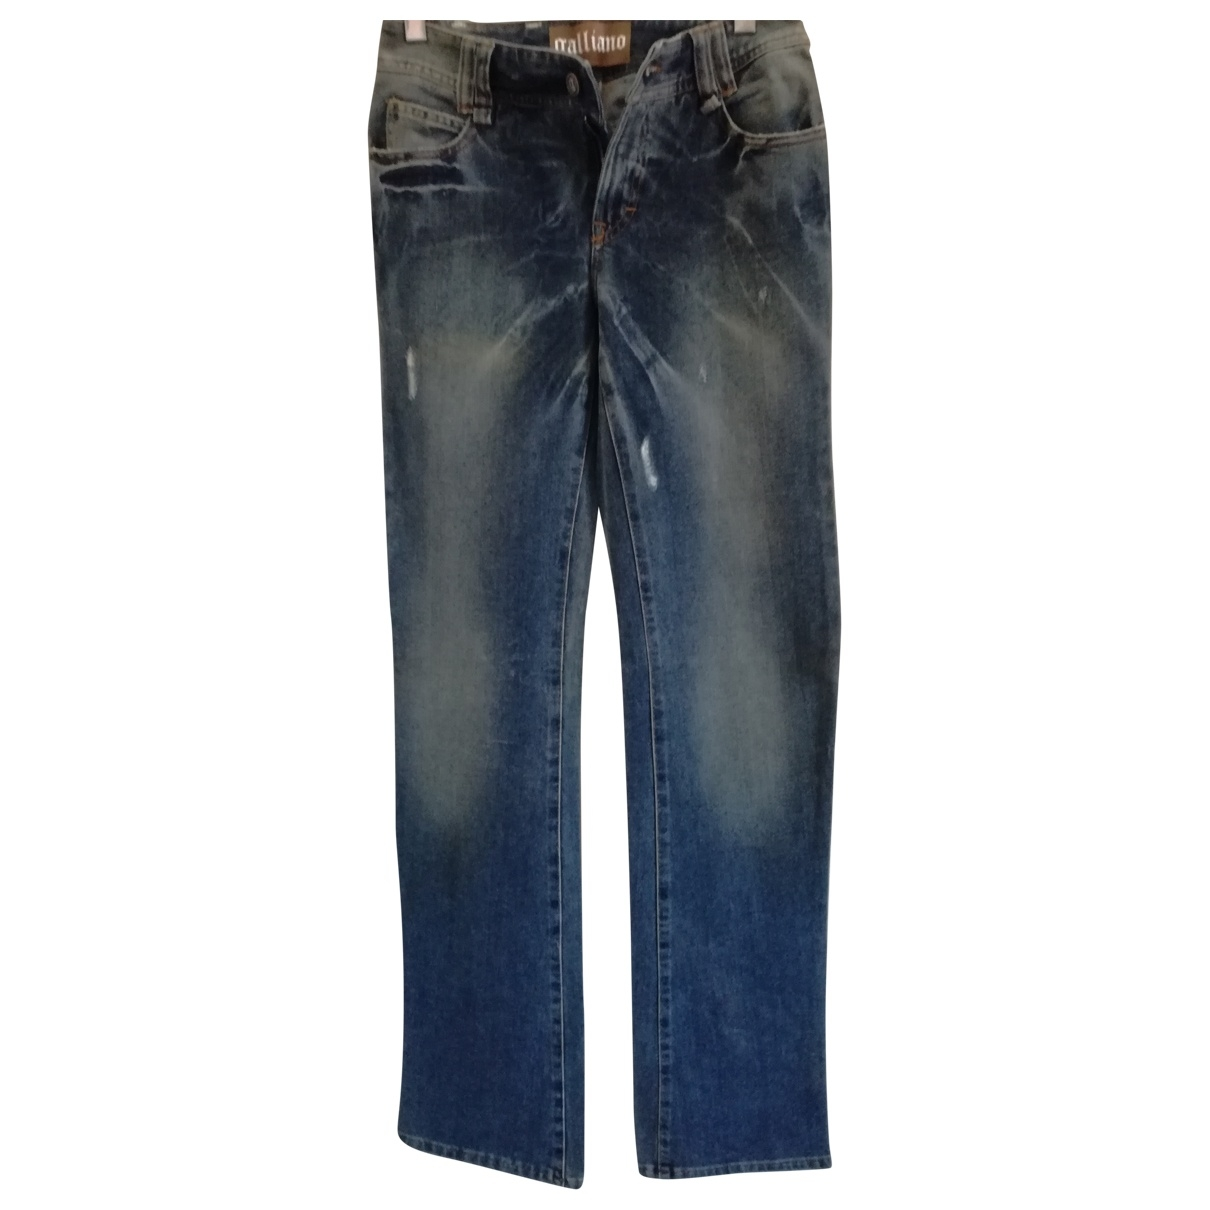 Galliano \N Blue Denim - Jeans Jeans for Women 34 US